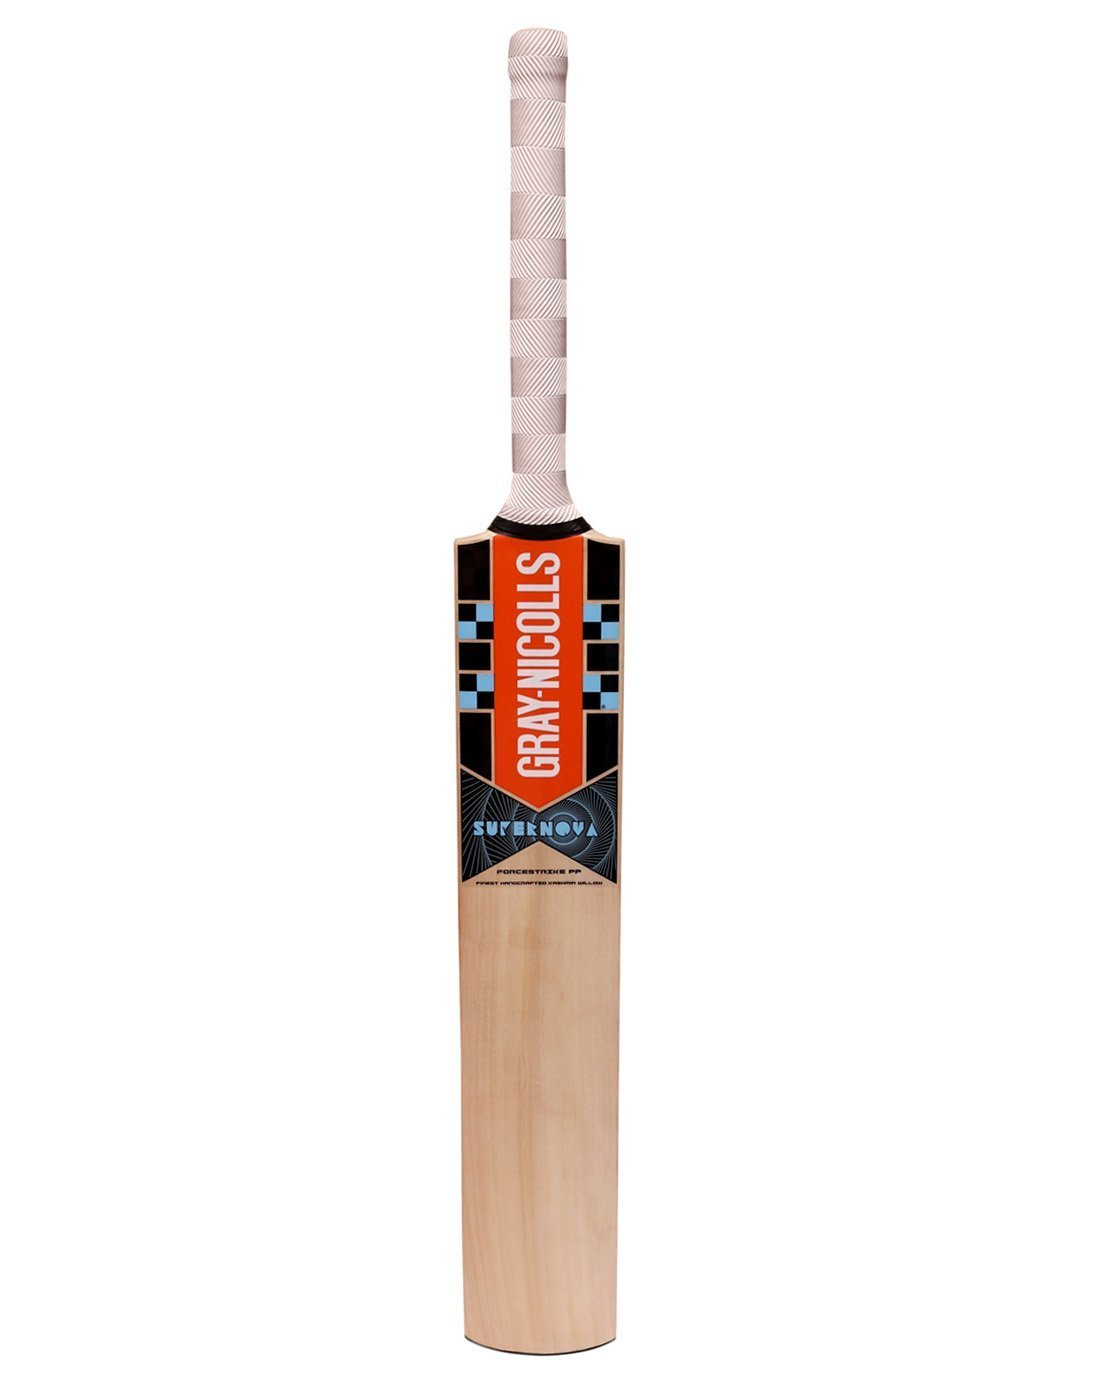 Amazon.com : Gray Nicolls Omega Blazer Kashmir Willow Cricket Bat (Short Handle) : Sports & Outdoors